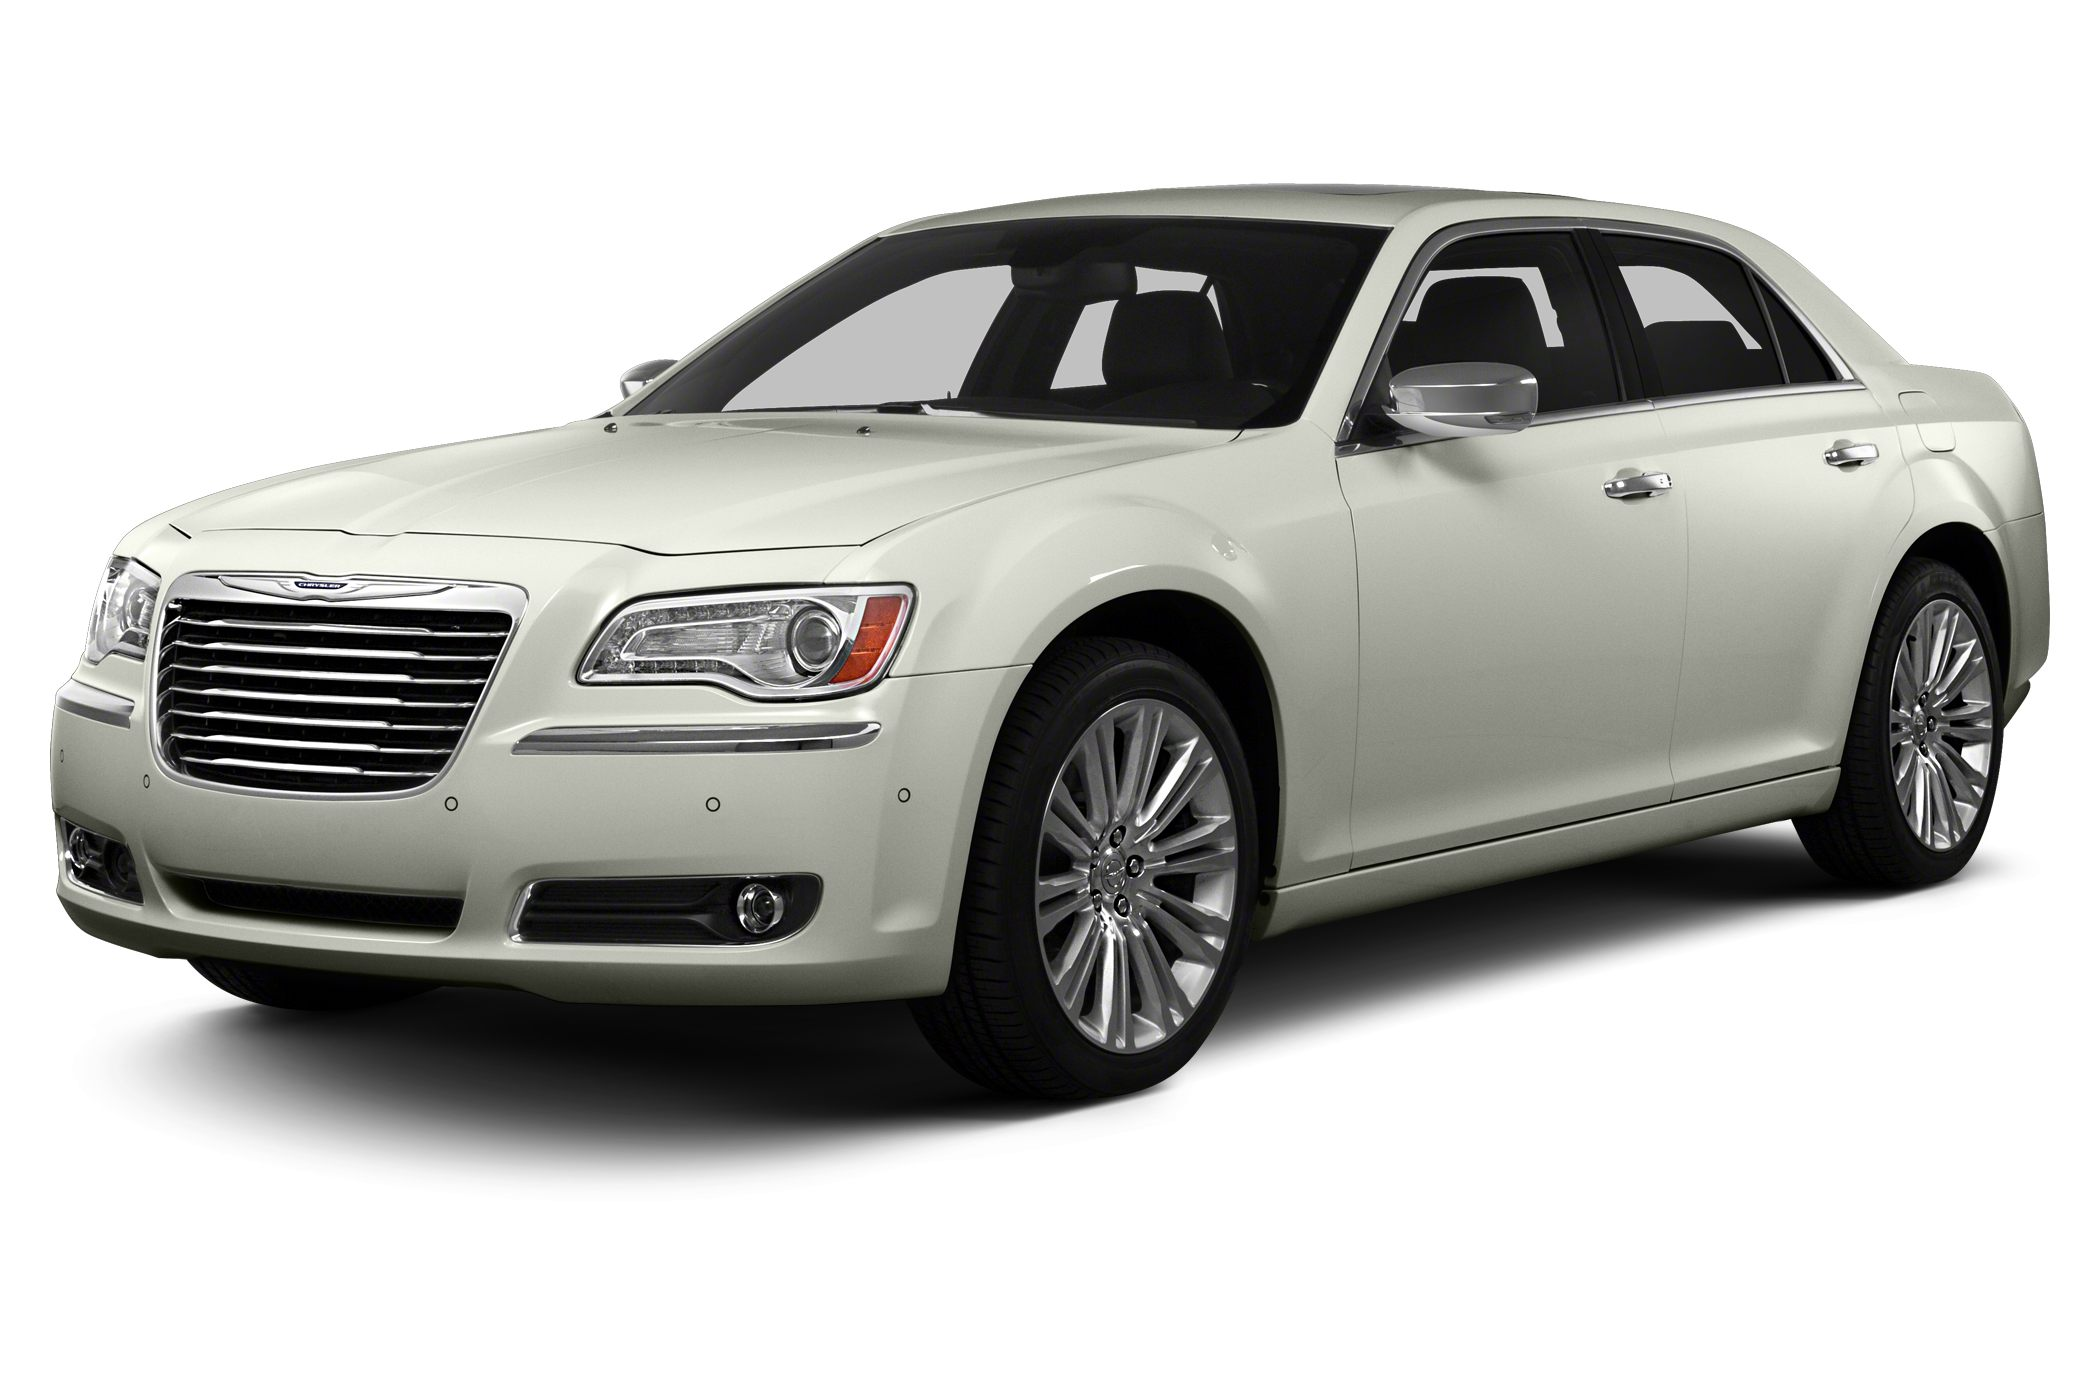 2013 Chrysler 300C Luxury Series Sedan for sale in Stoughton for $25,900 with 30,341 miles.